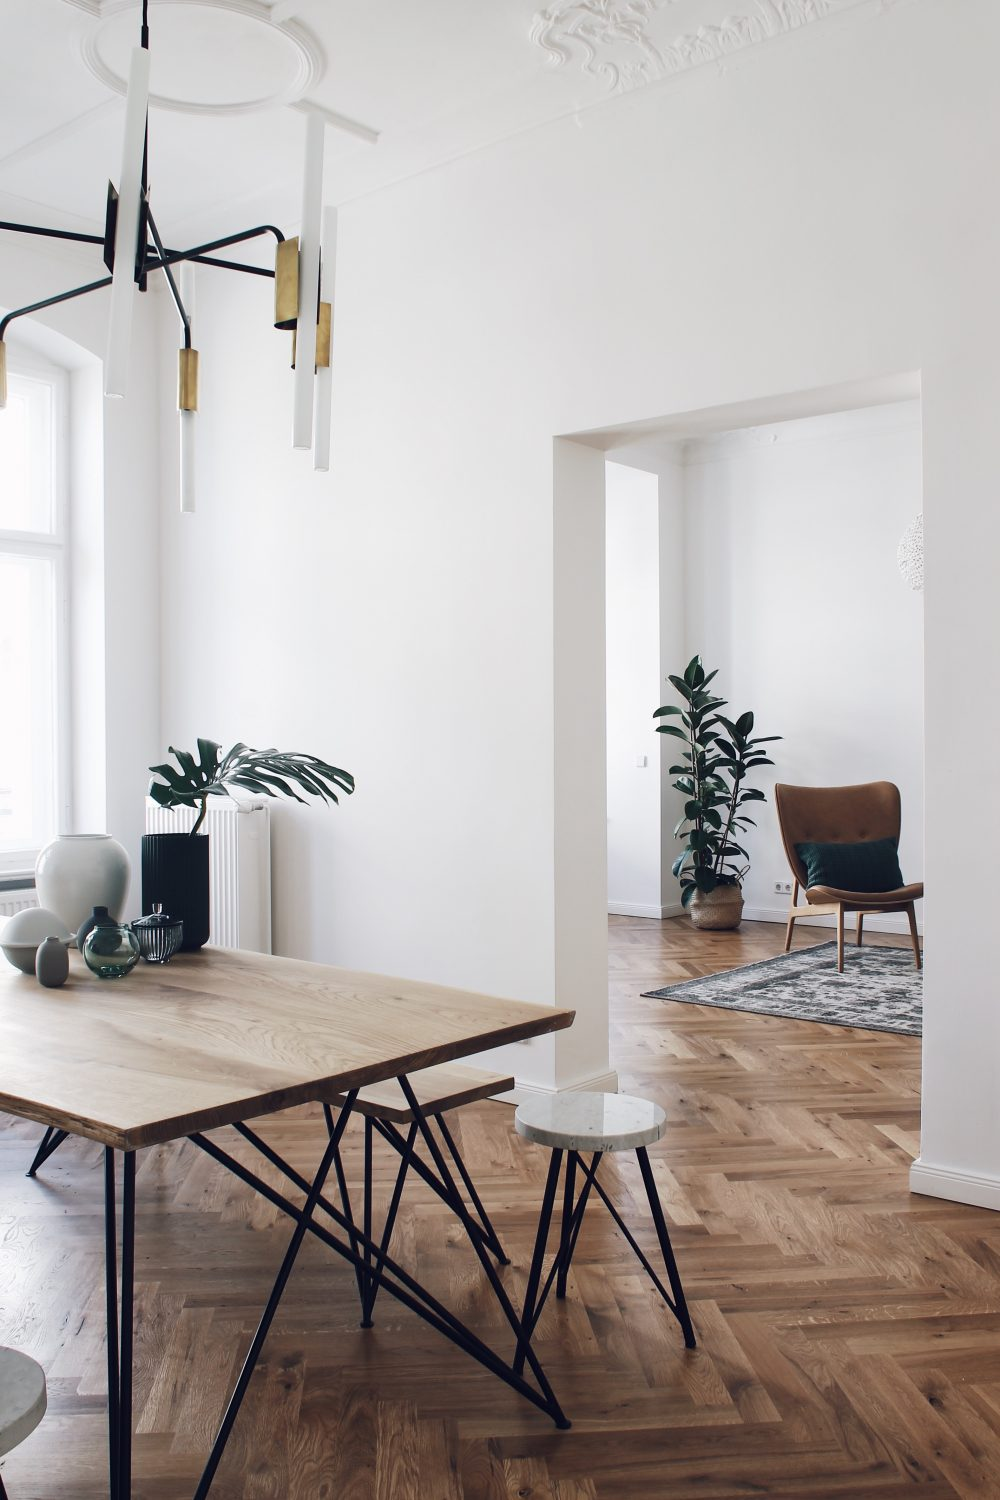 Berlin Altbau styling example by Interior stylists Salty Interiors